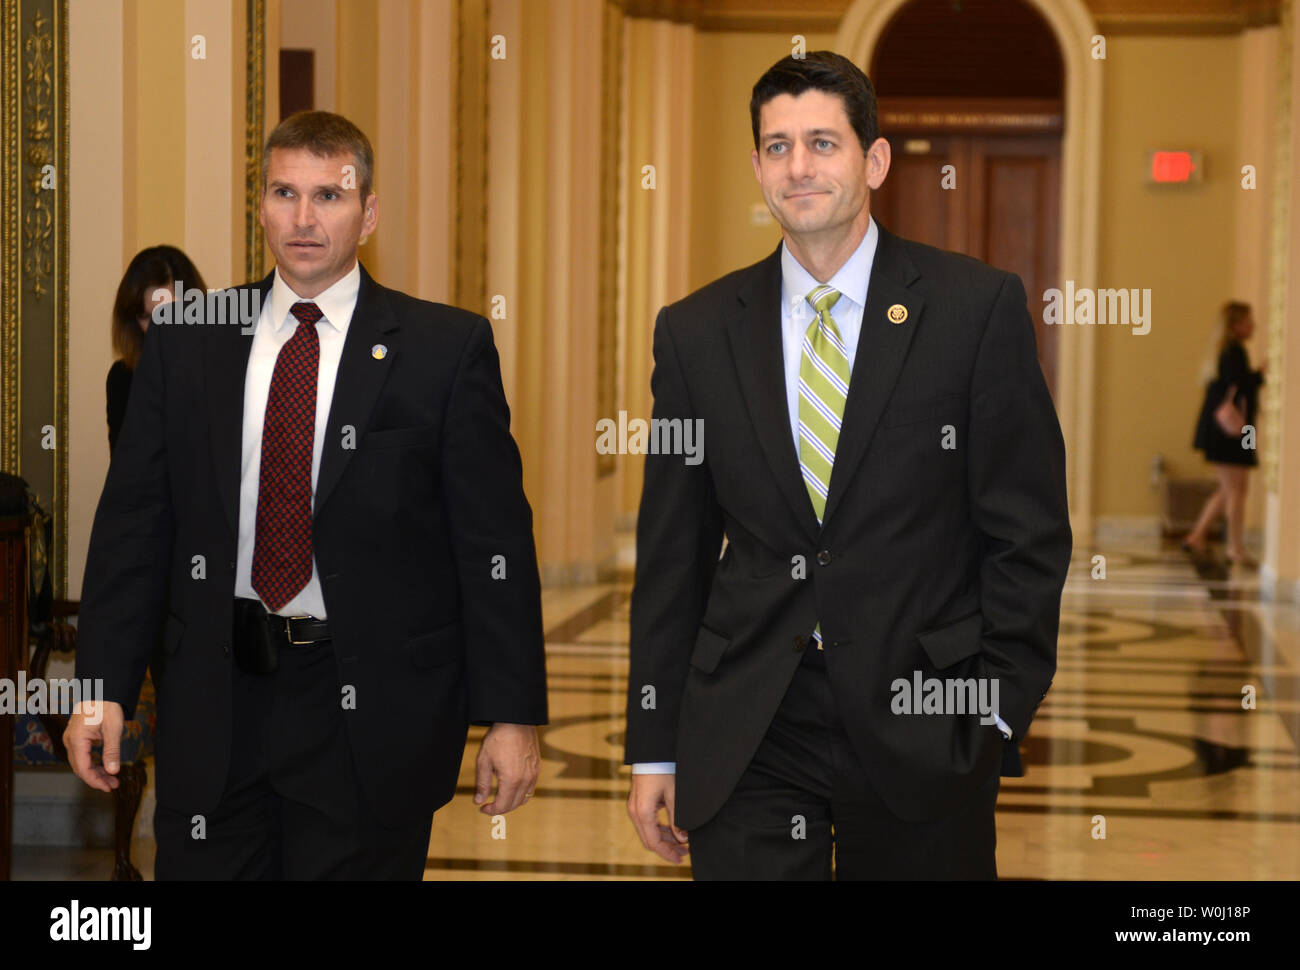 Rep. Paul Ryan (R-WI) departs the Ways and Means Committee office in the U.S. Capitol, October 27, 2015, in Washington, DC. Paul is expected to take the Speaker's gavel, succeeding Rep. John Boehner (R-OH), who is stepping down.      Photo by Mike Theiler/UPI - Stock Image